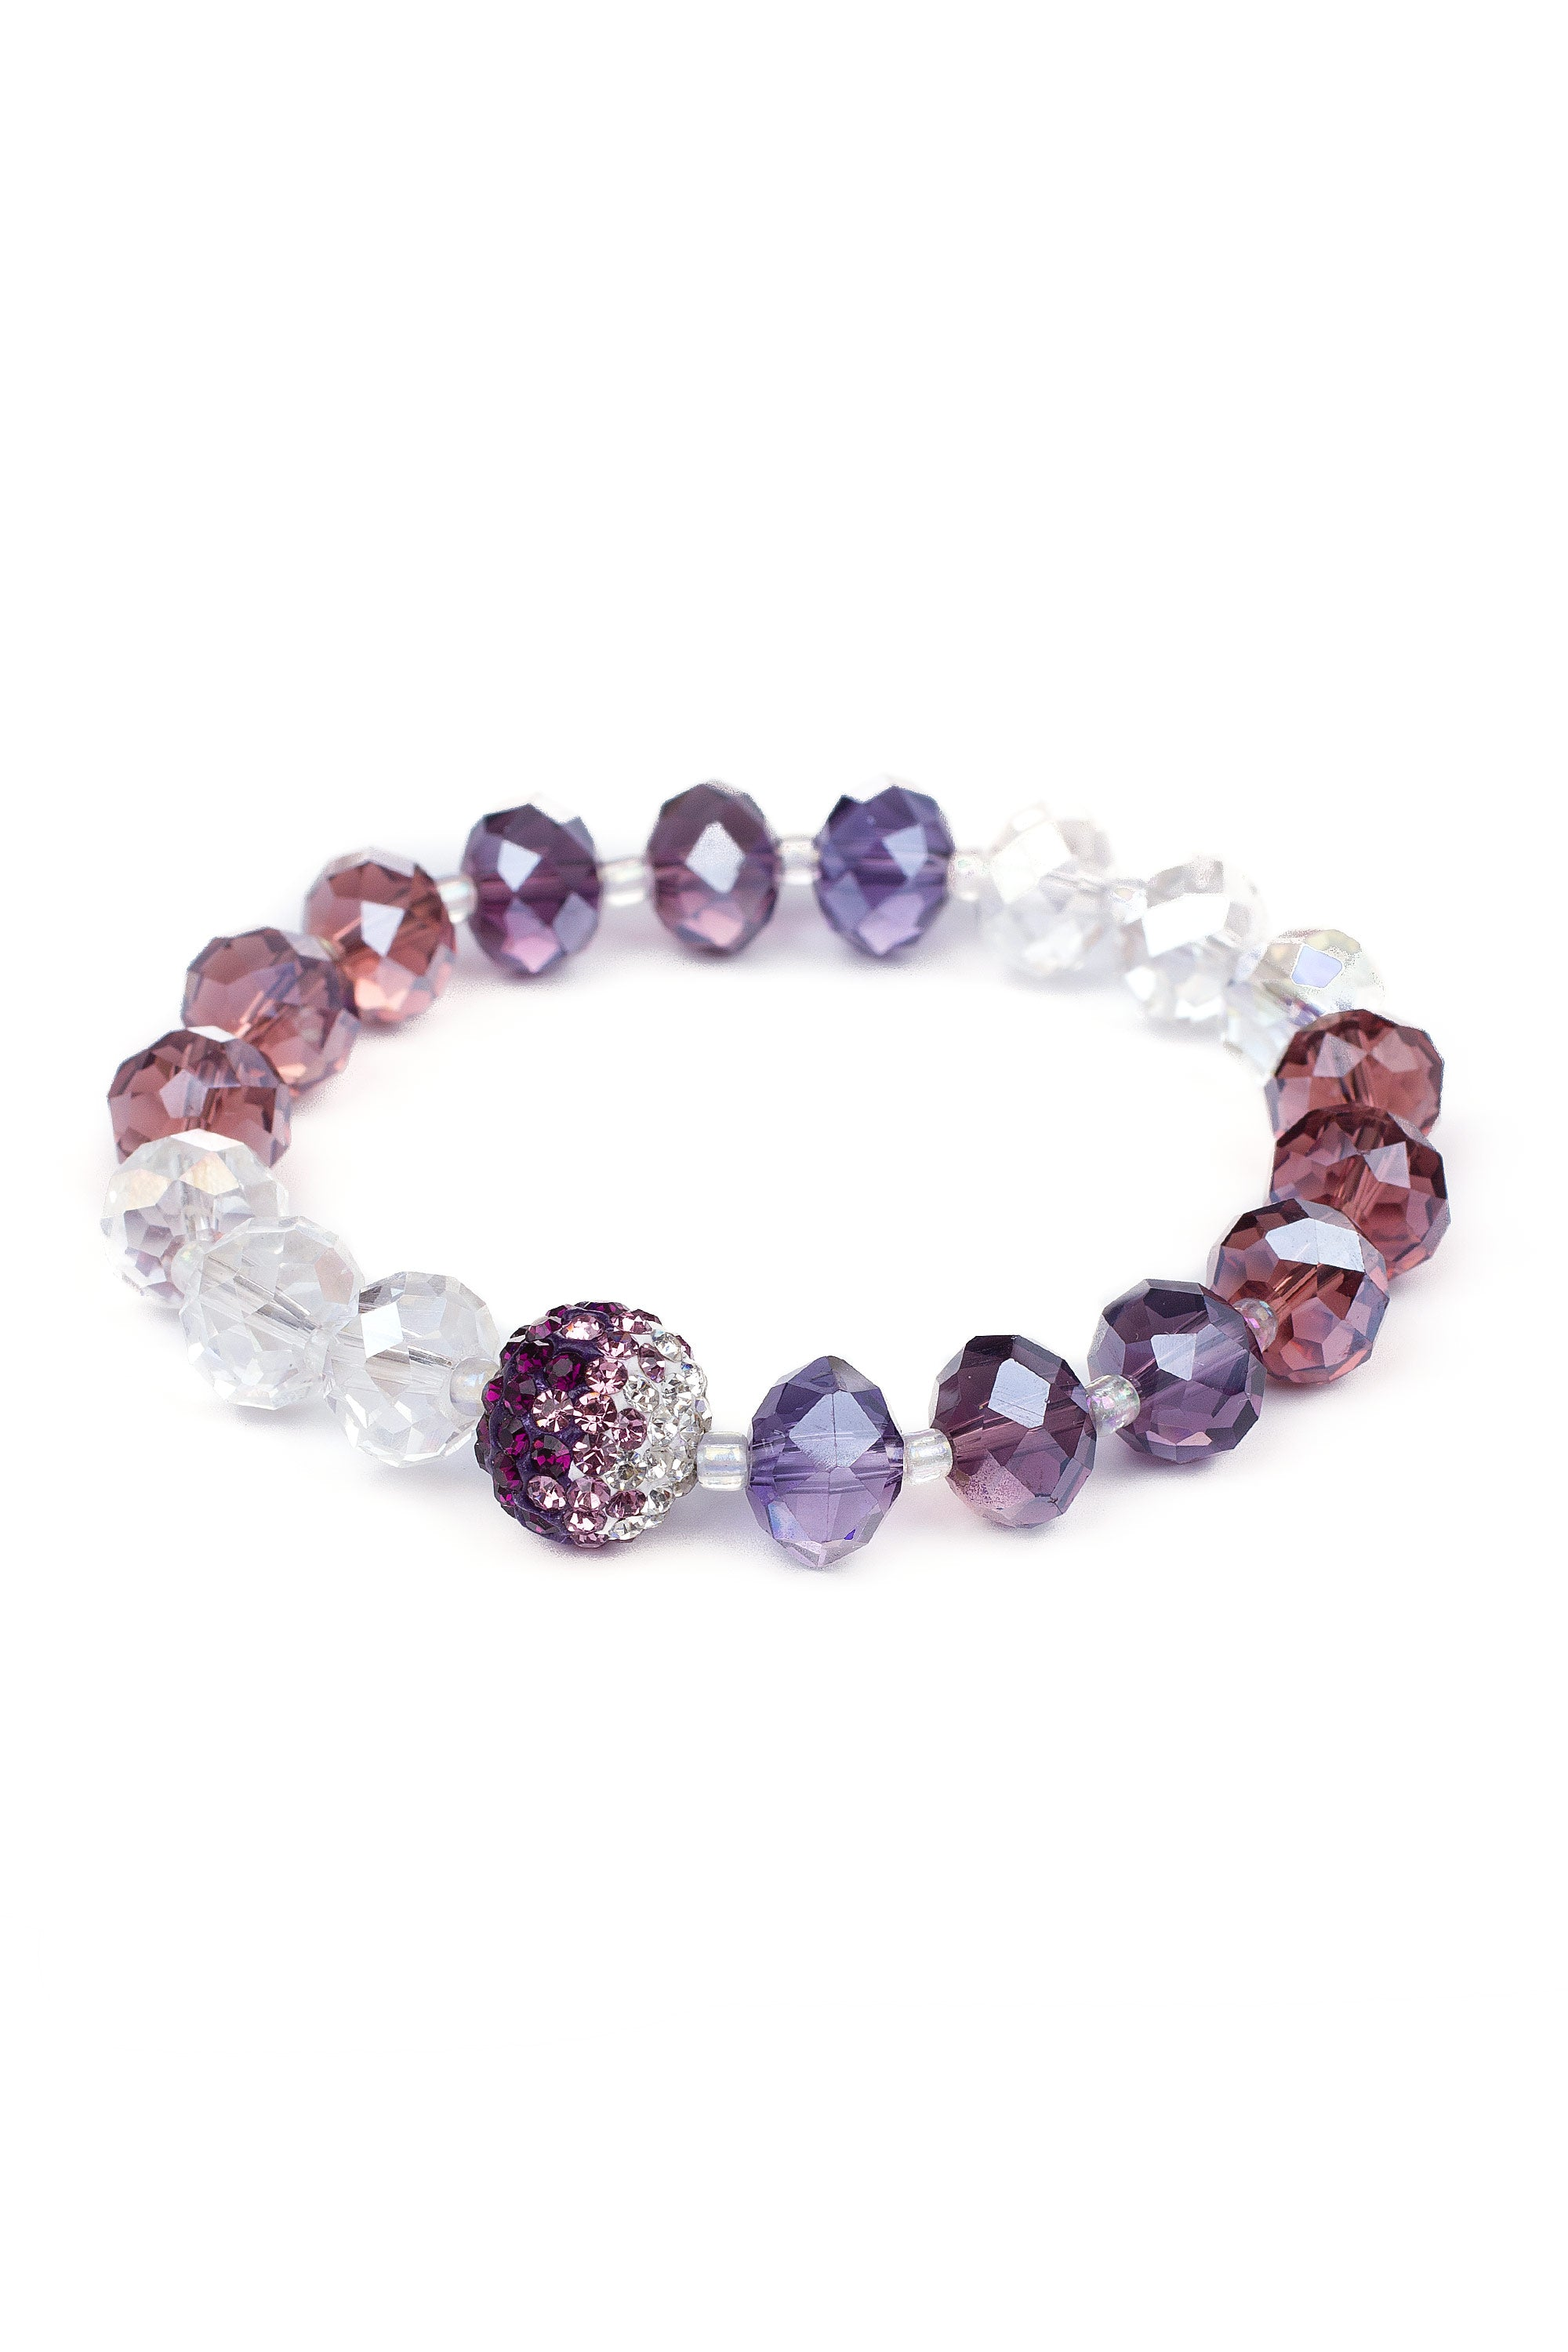 Type 2 Moonbeam Bracelet